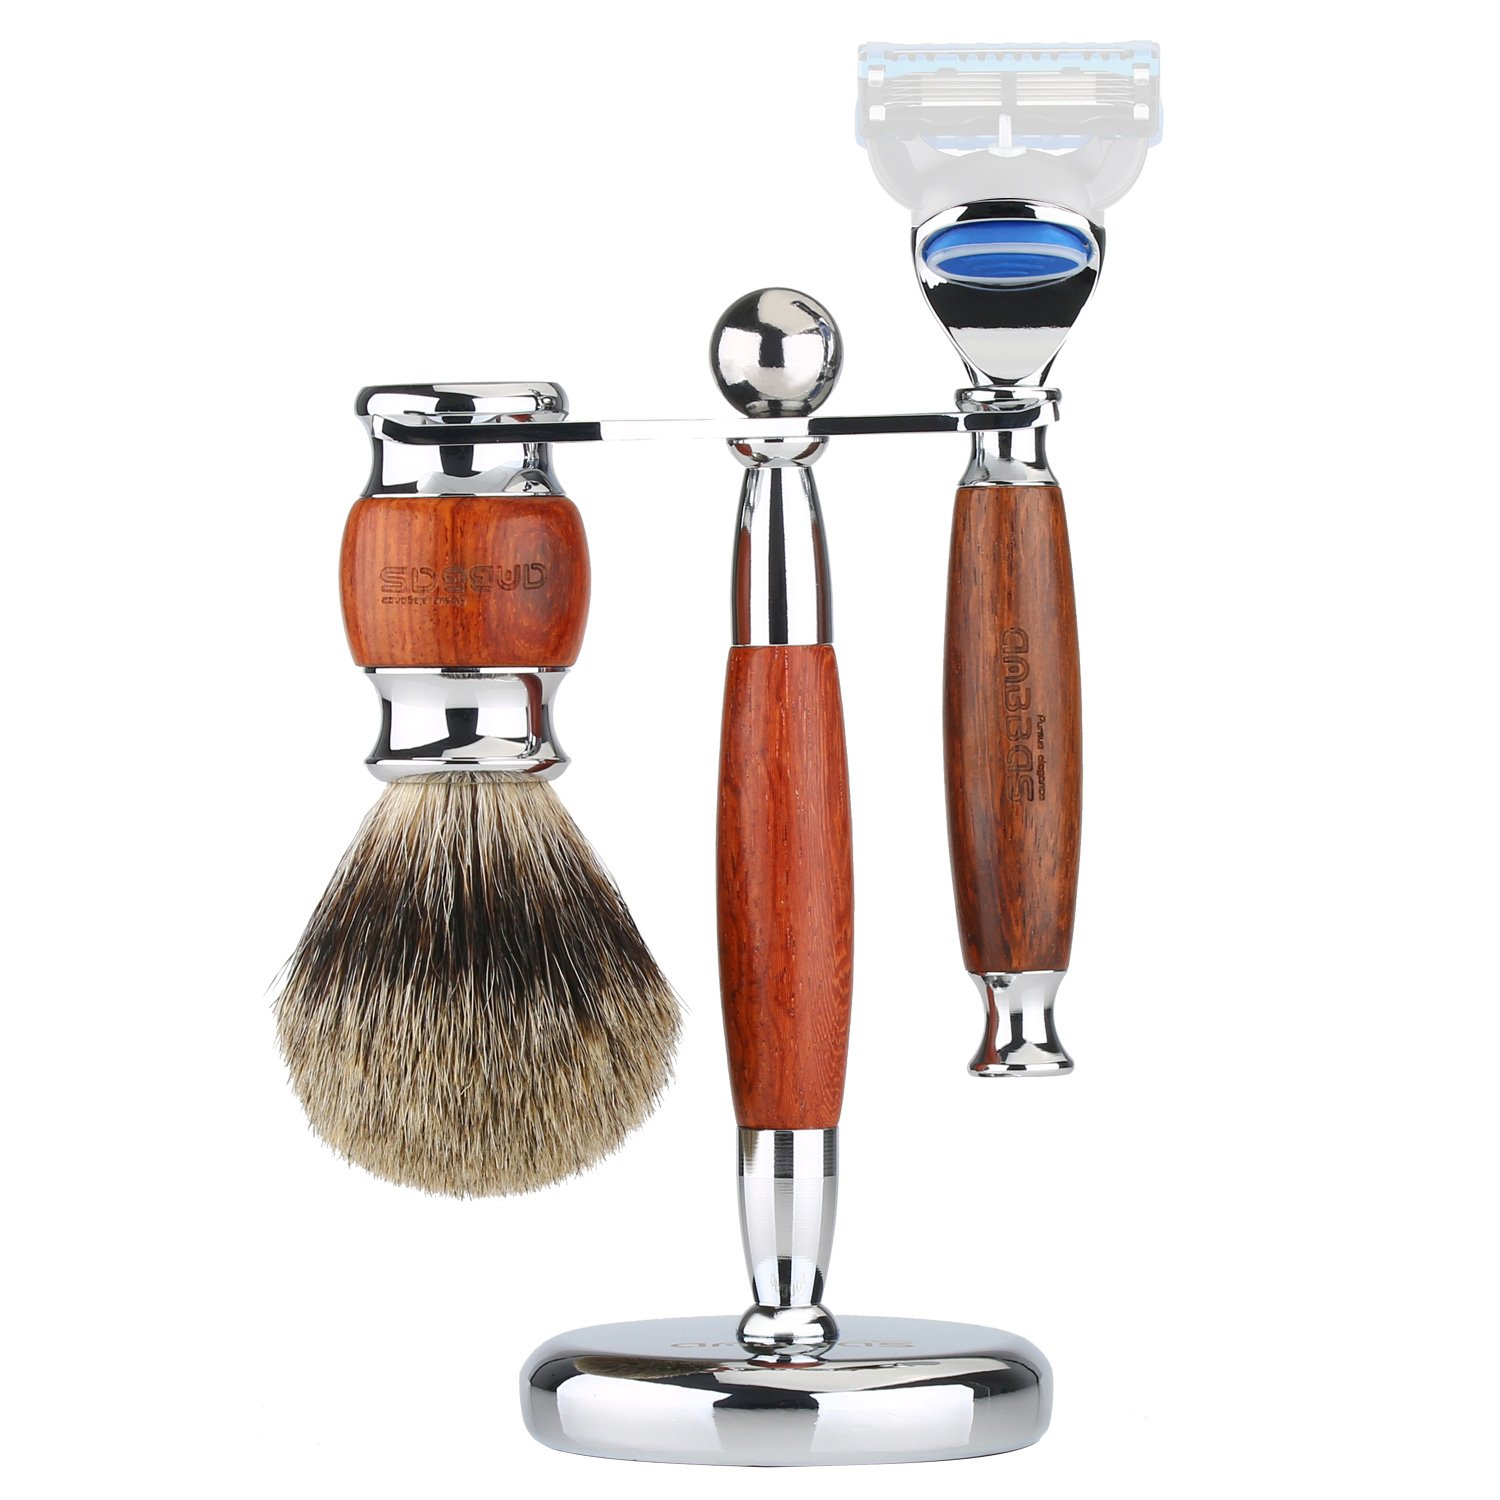 Shaving Brush Super Badger Hair, 3in1 Anbbas Shaving Set with Razor Stand Holder 6.1'',Manual Shaving Razor Handle Kit for Men Wet Shave,Alloy with Solid Rosewood Design,Fashion Gift Choice